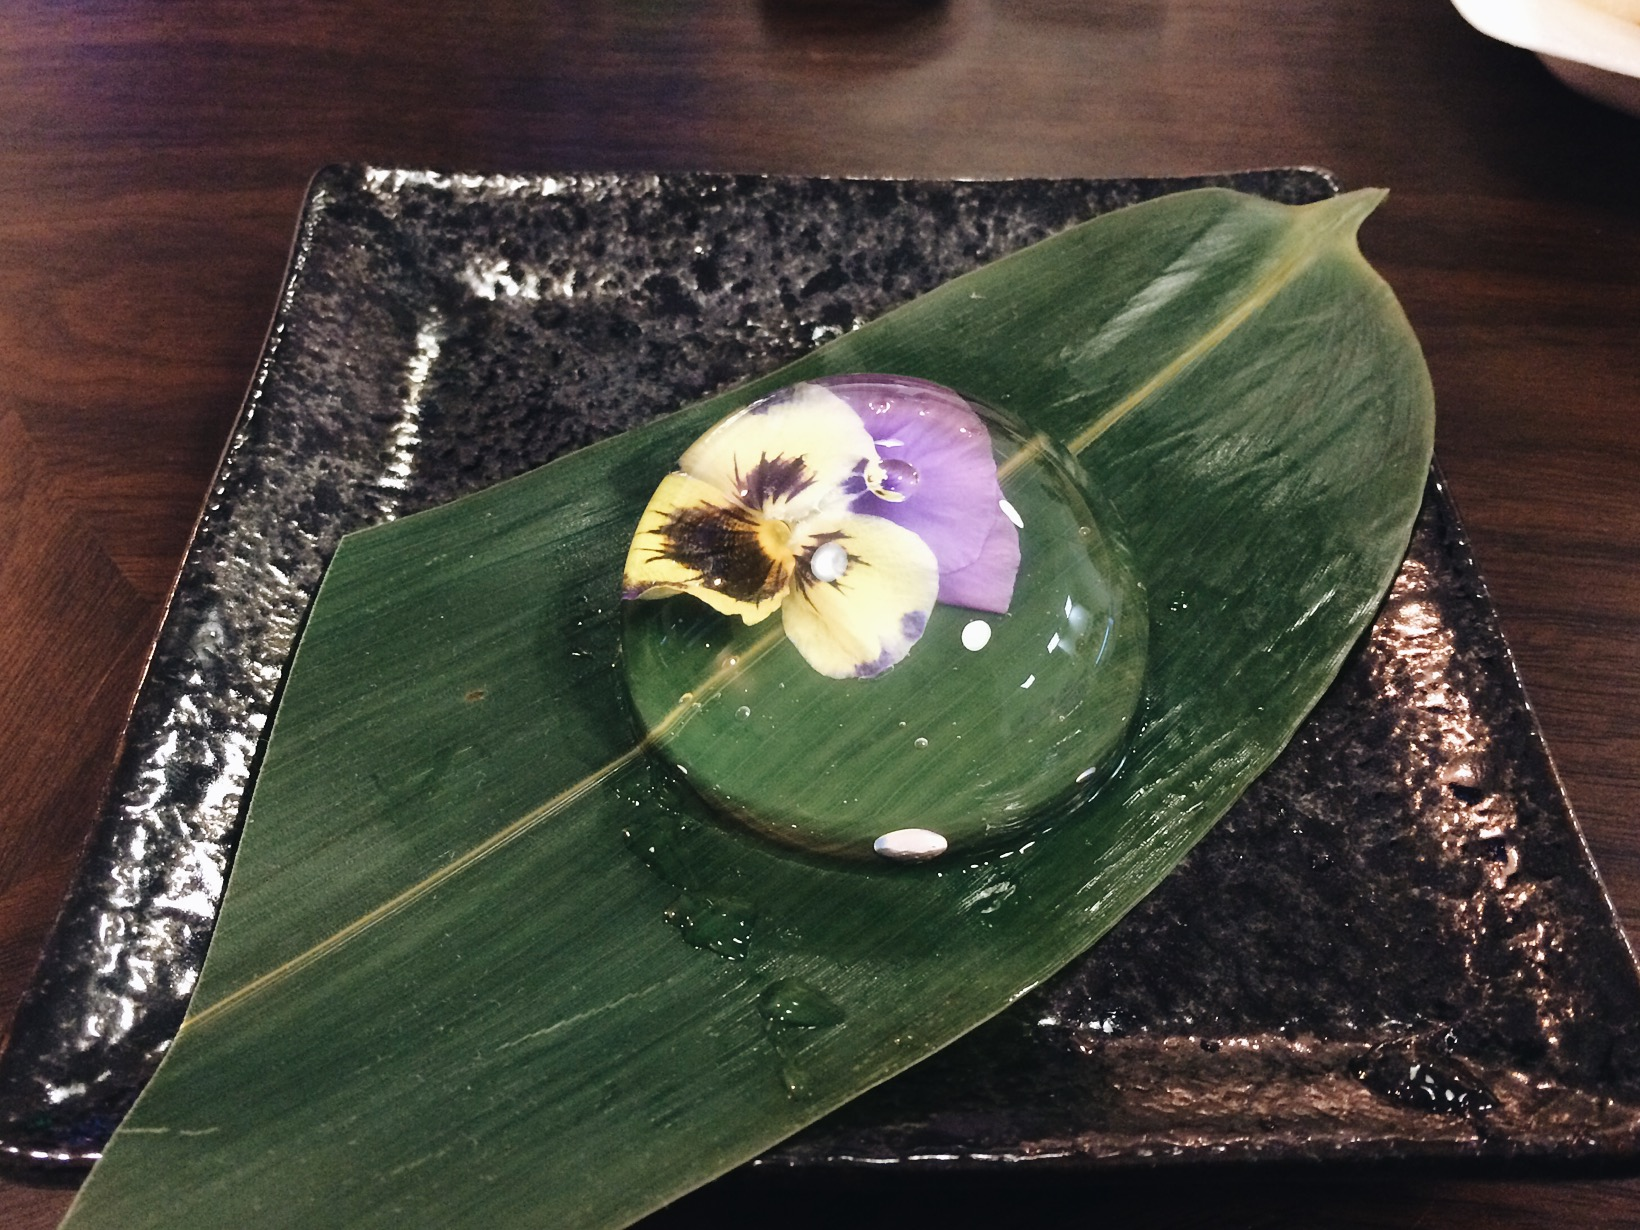 Rain Drop Cake. At first bite I was like, shit taste like a rain drop. It had no flavor, like I was actually eating water. But it came with syrup and some powder that you sprinkle on top of it and damn it was sweet! But good! very cool looking cake.